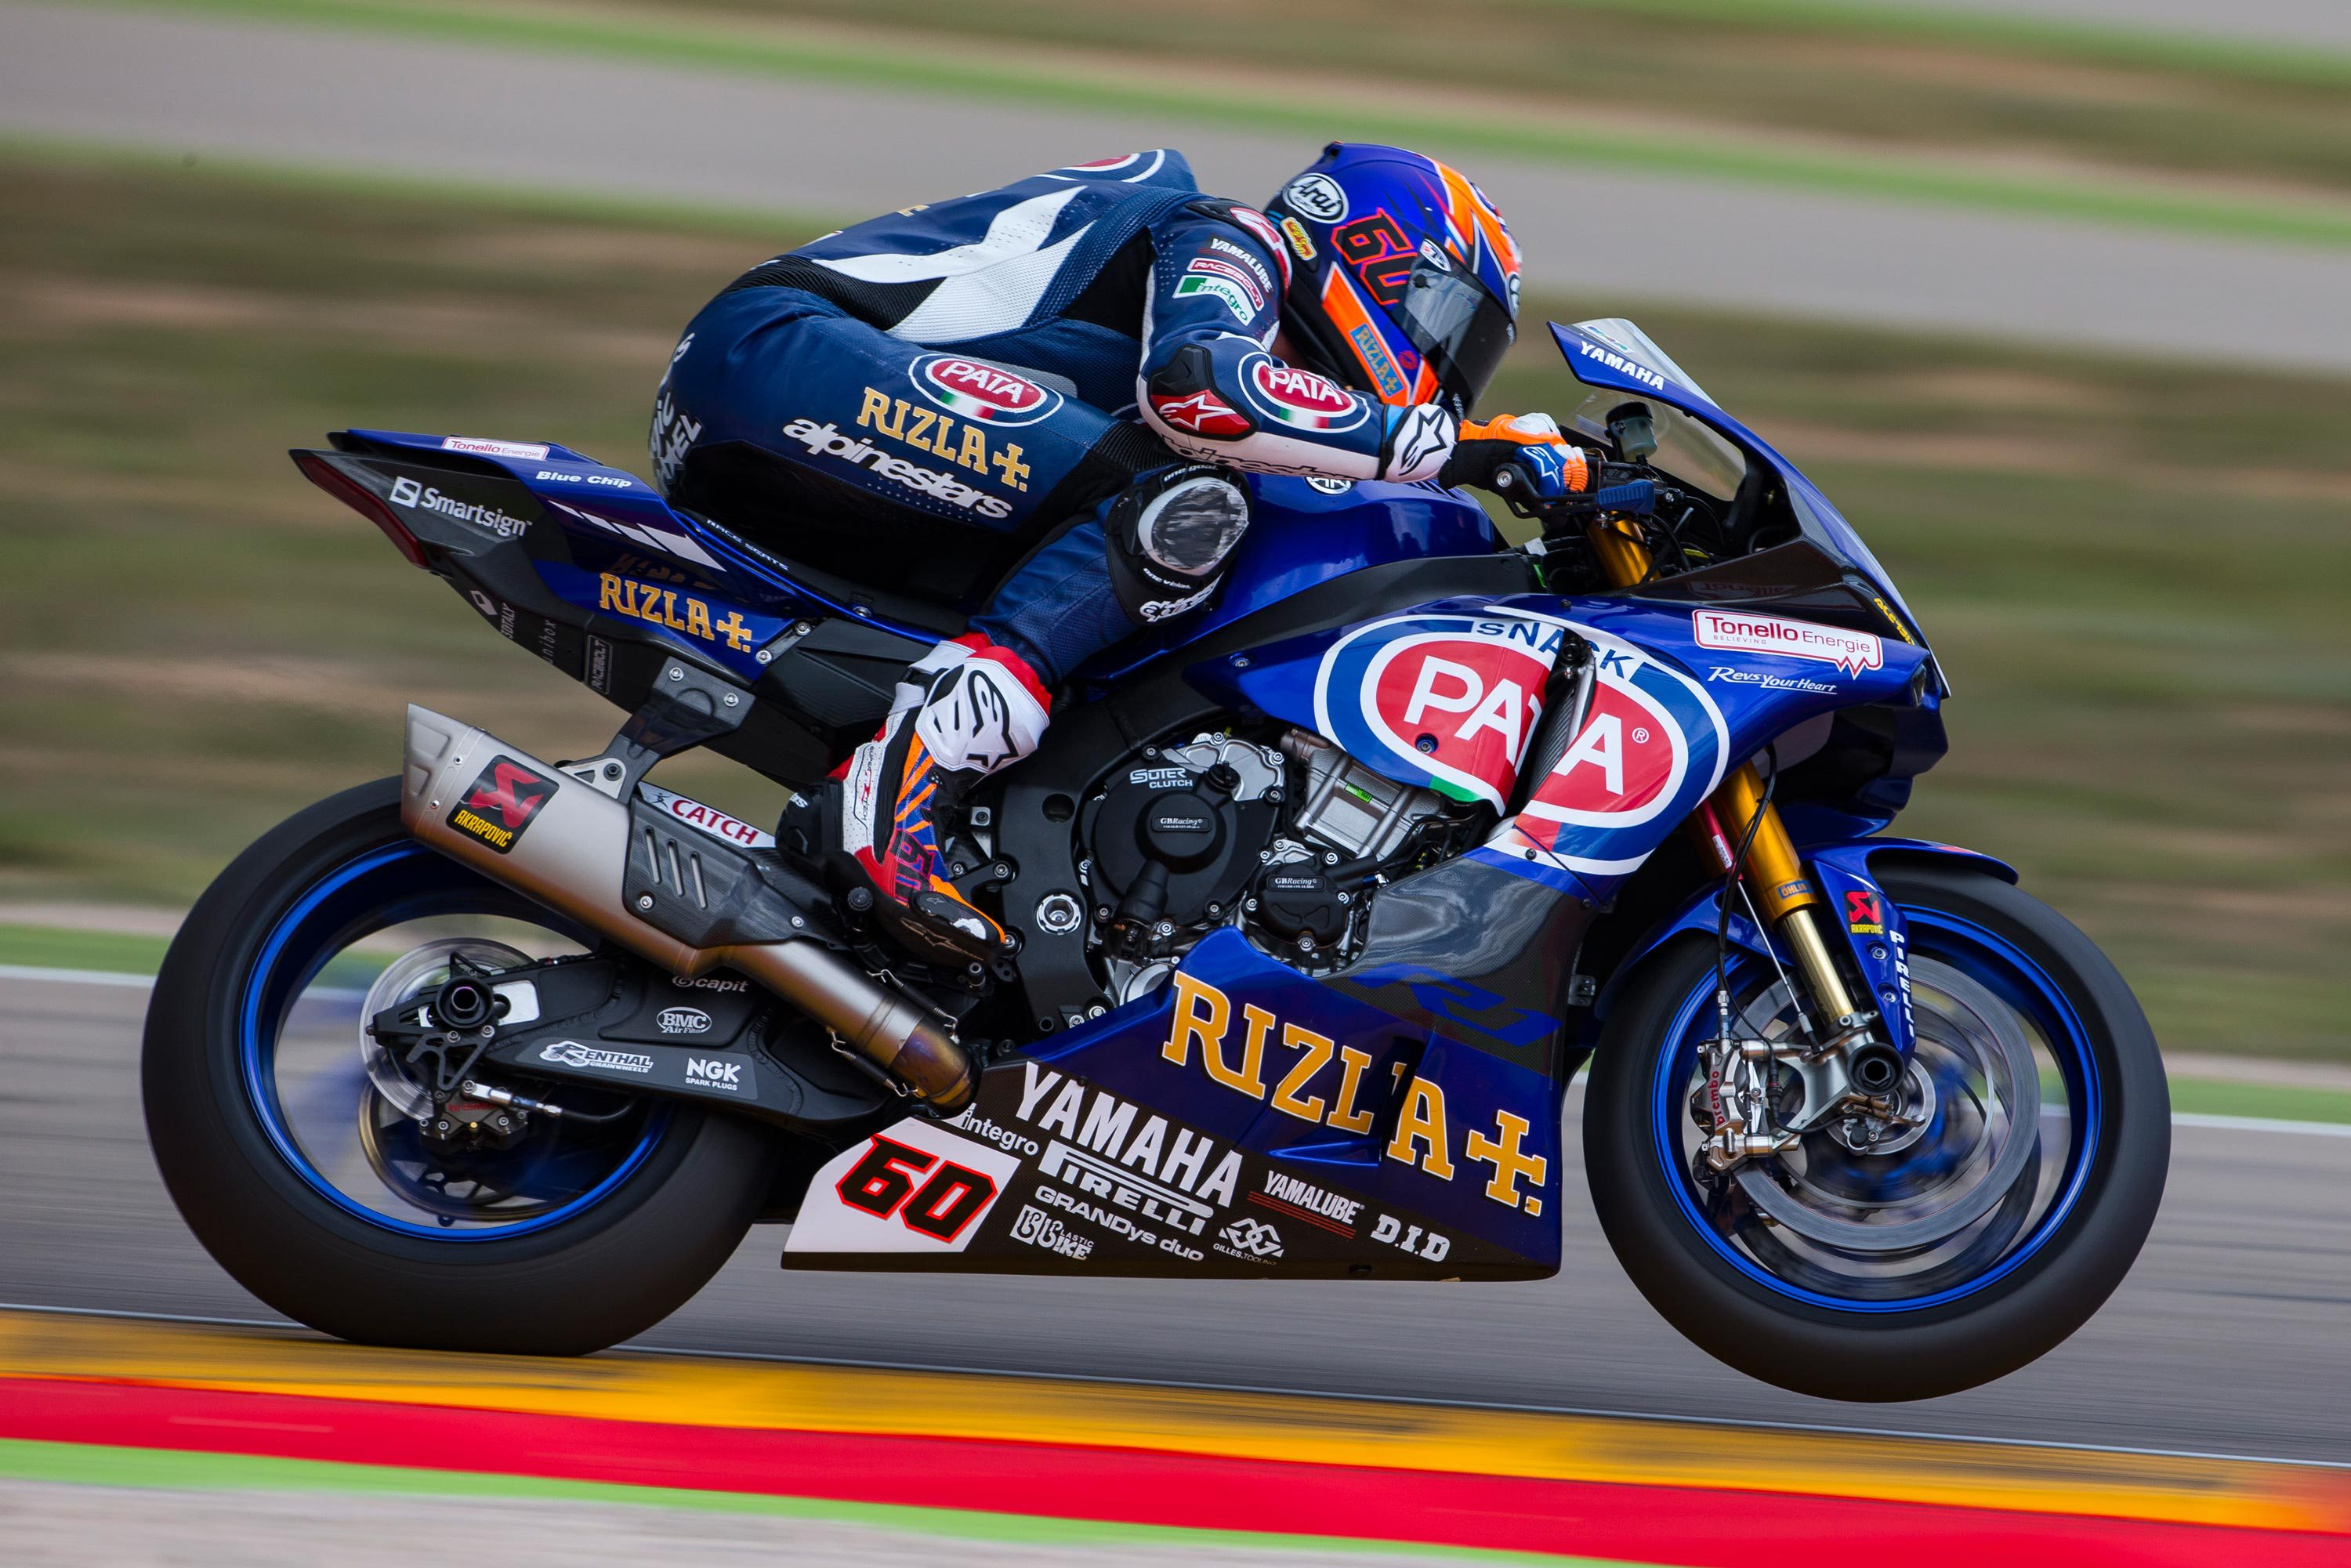 michael van der mark yamaha racing